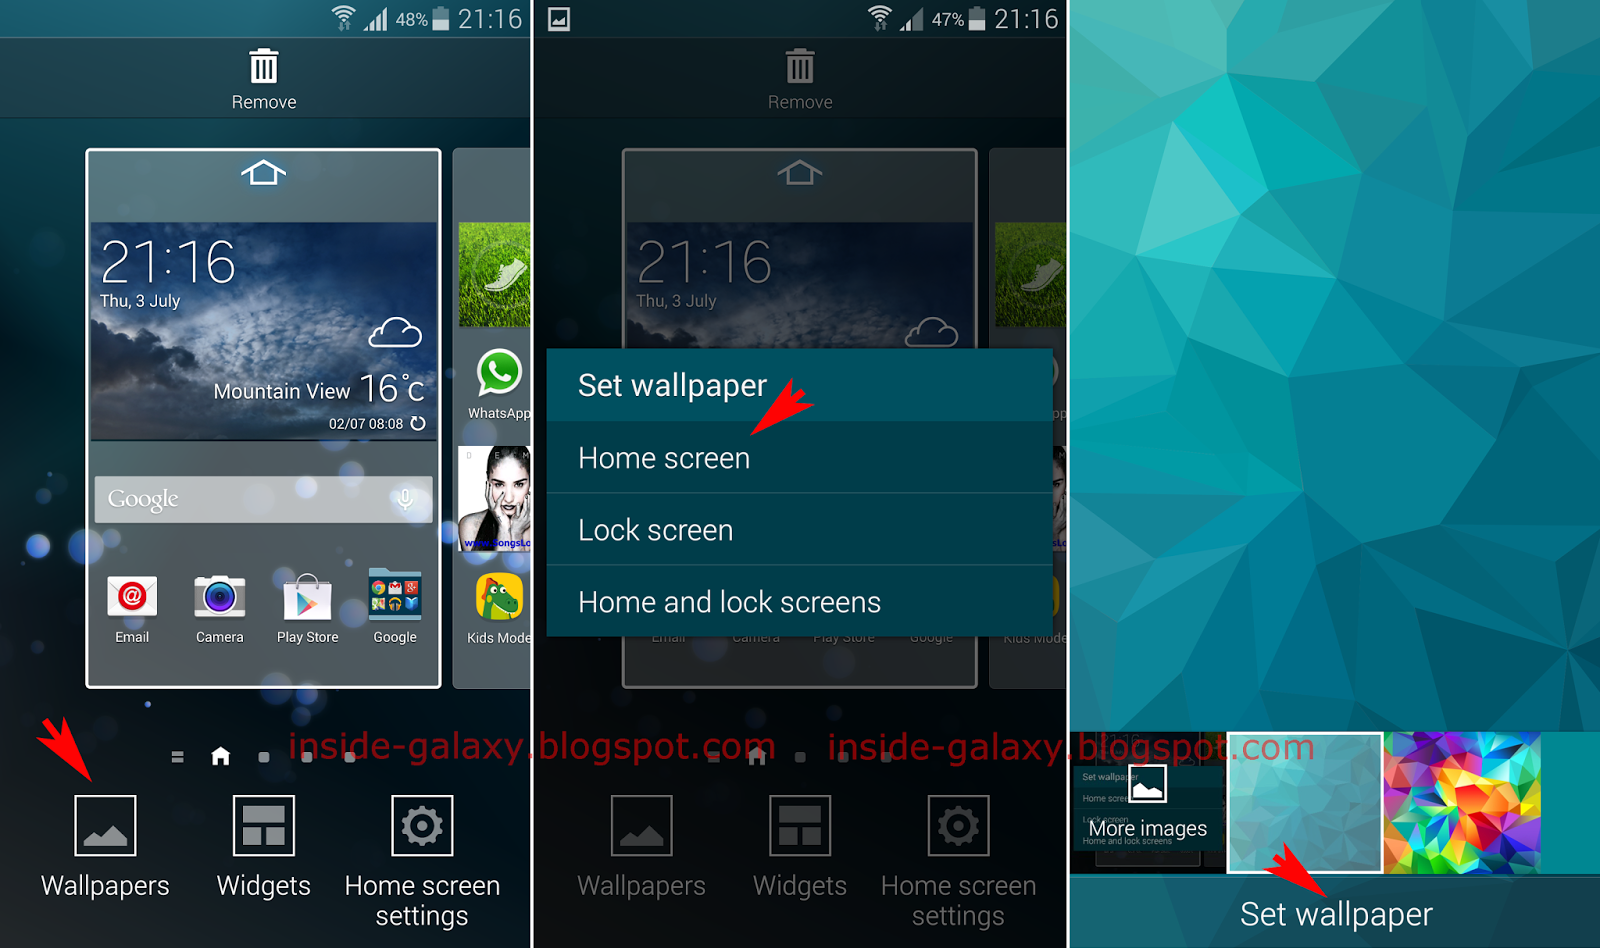 Inside Galaxy Samsung Galaxy S5 How To Change Wallpaper In